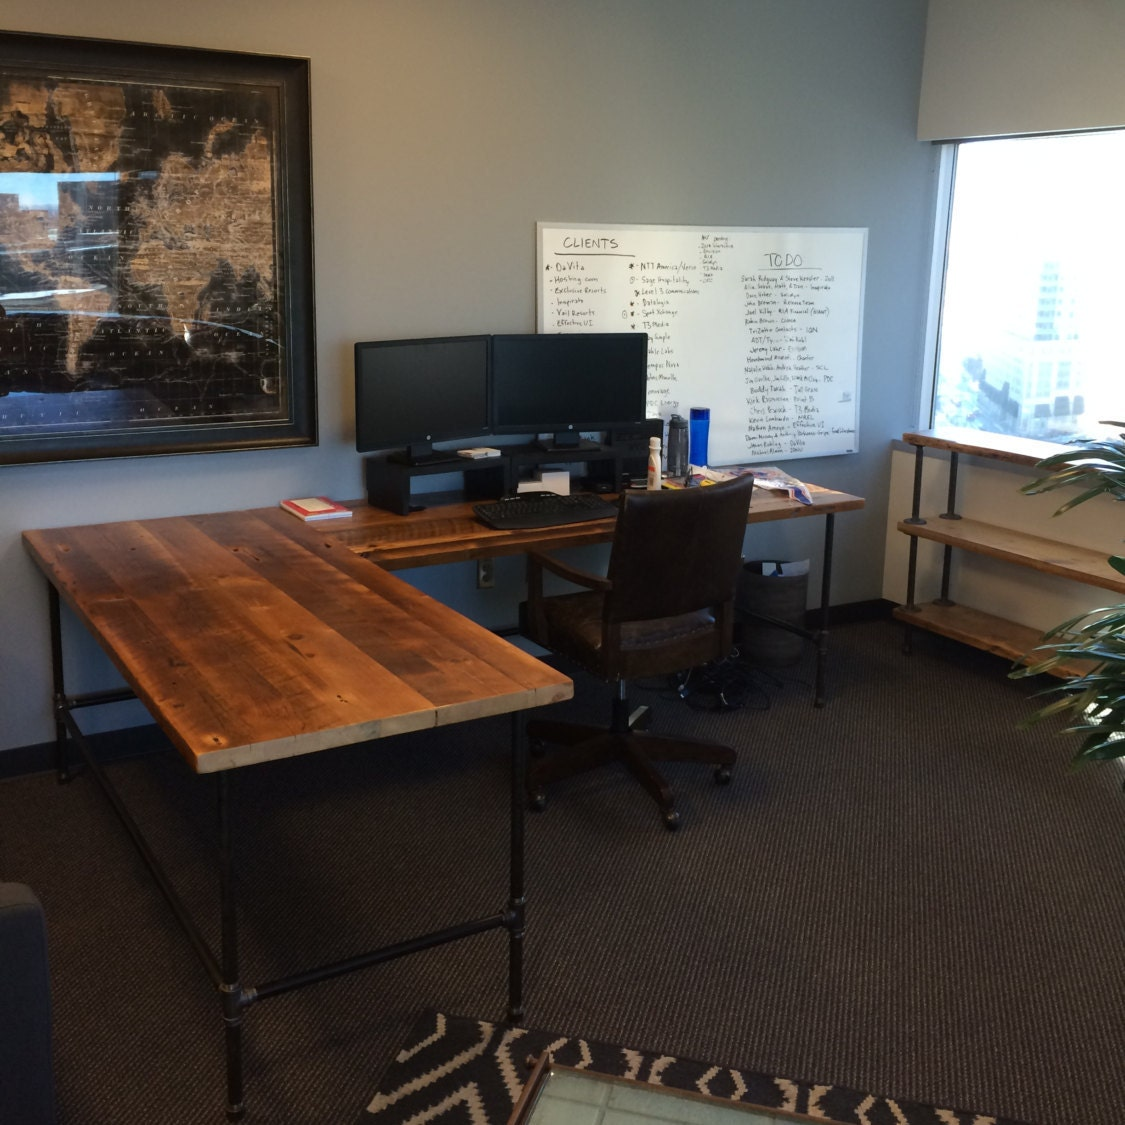 Superb img of Custom Desk L shaped made of reclaimed wood and by UrbanWoodGoods with #6F4128 color and 1125x1125 pixels